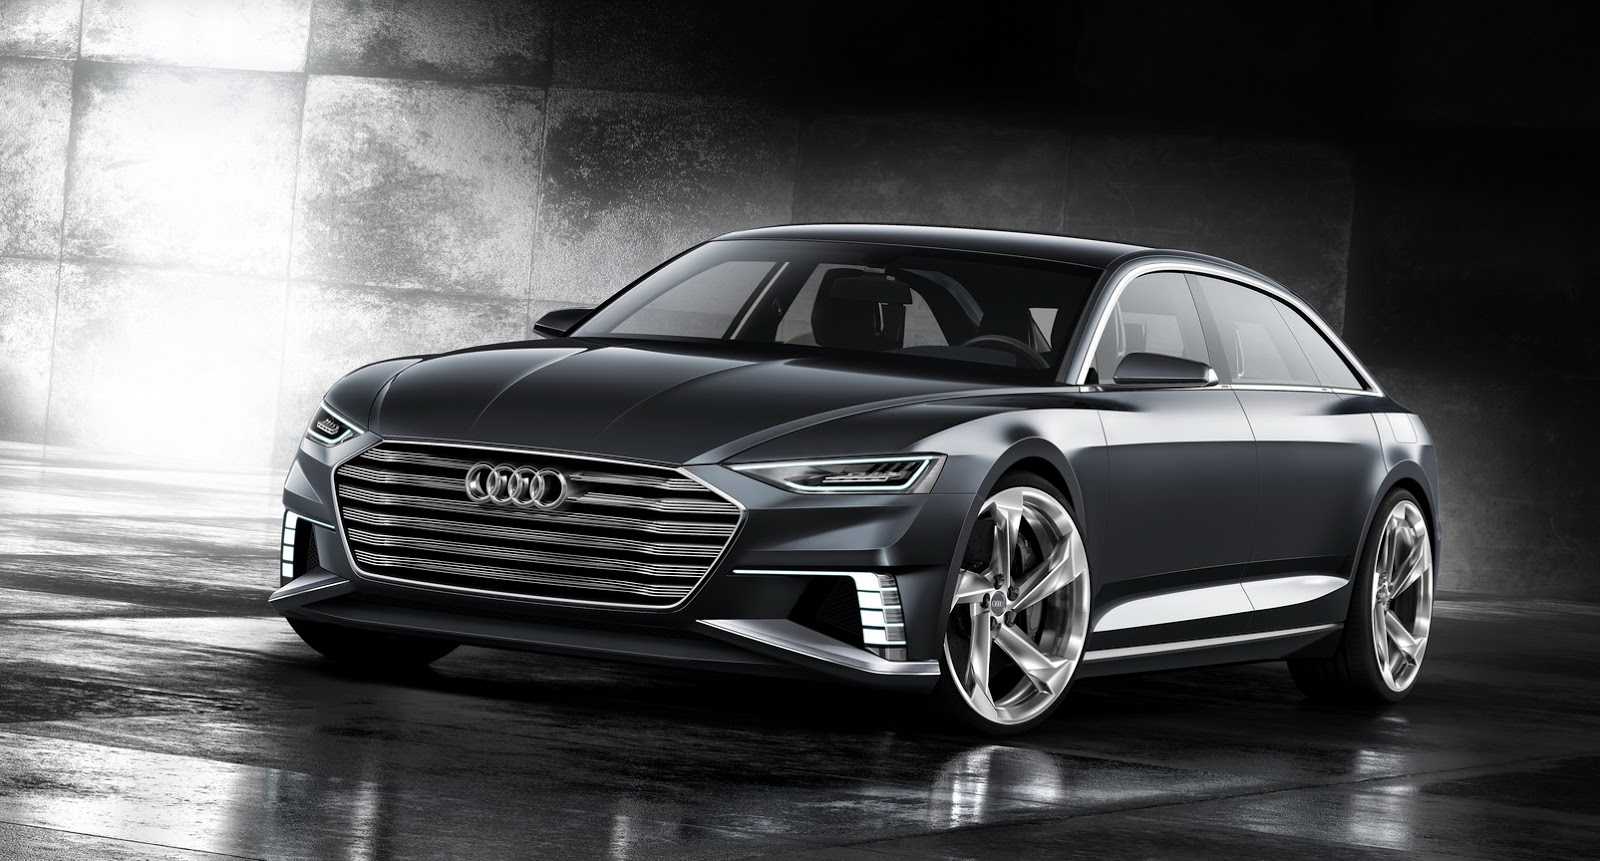 2017 Audi Prologue Avant Concept photo - 1